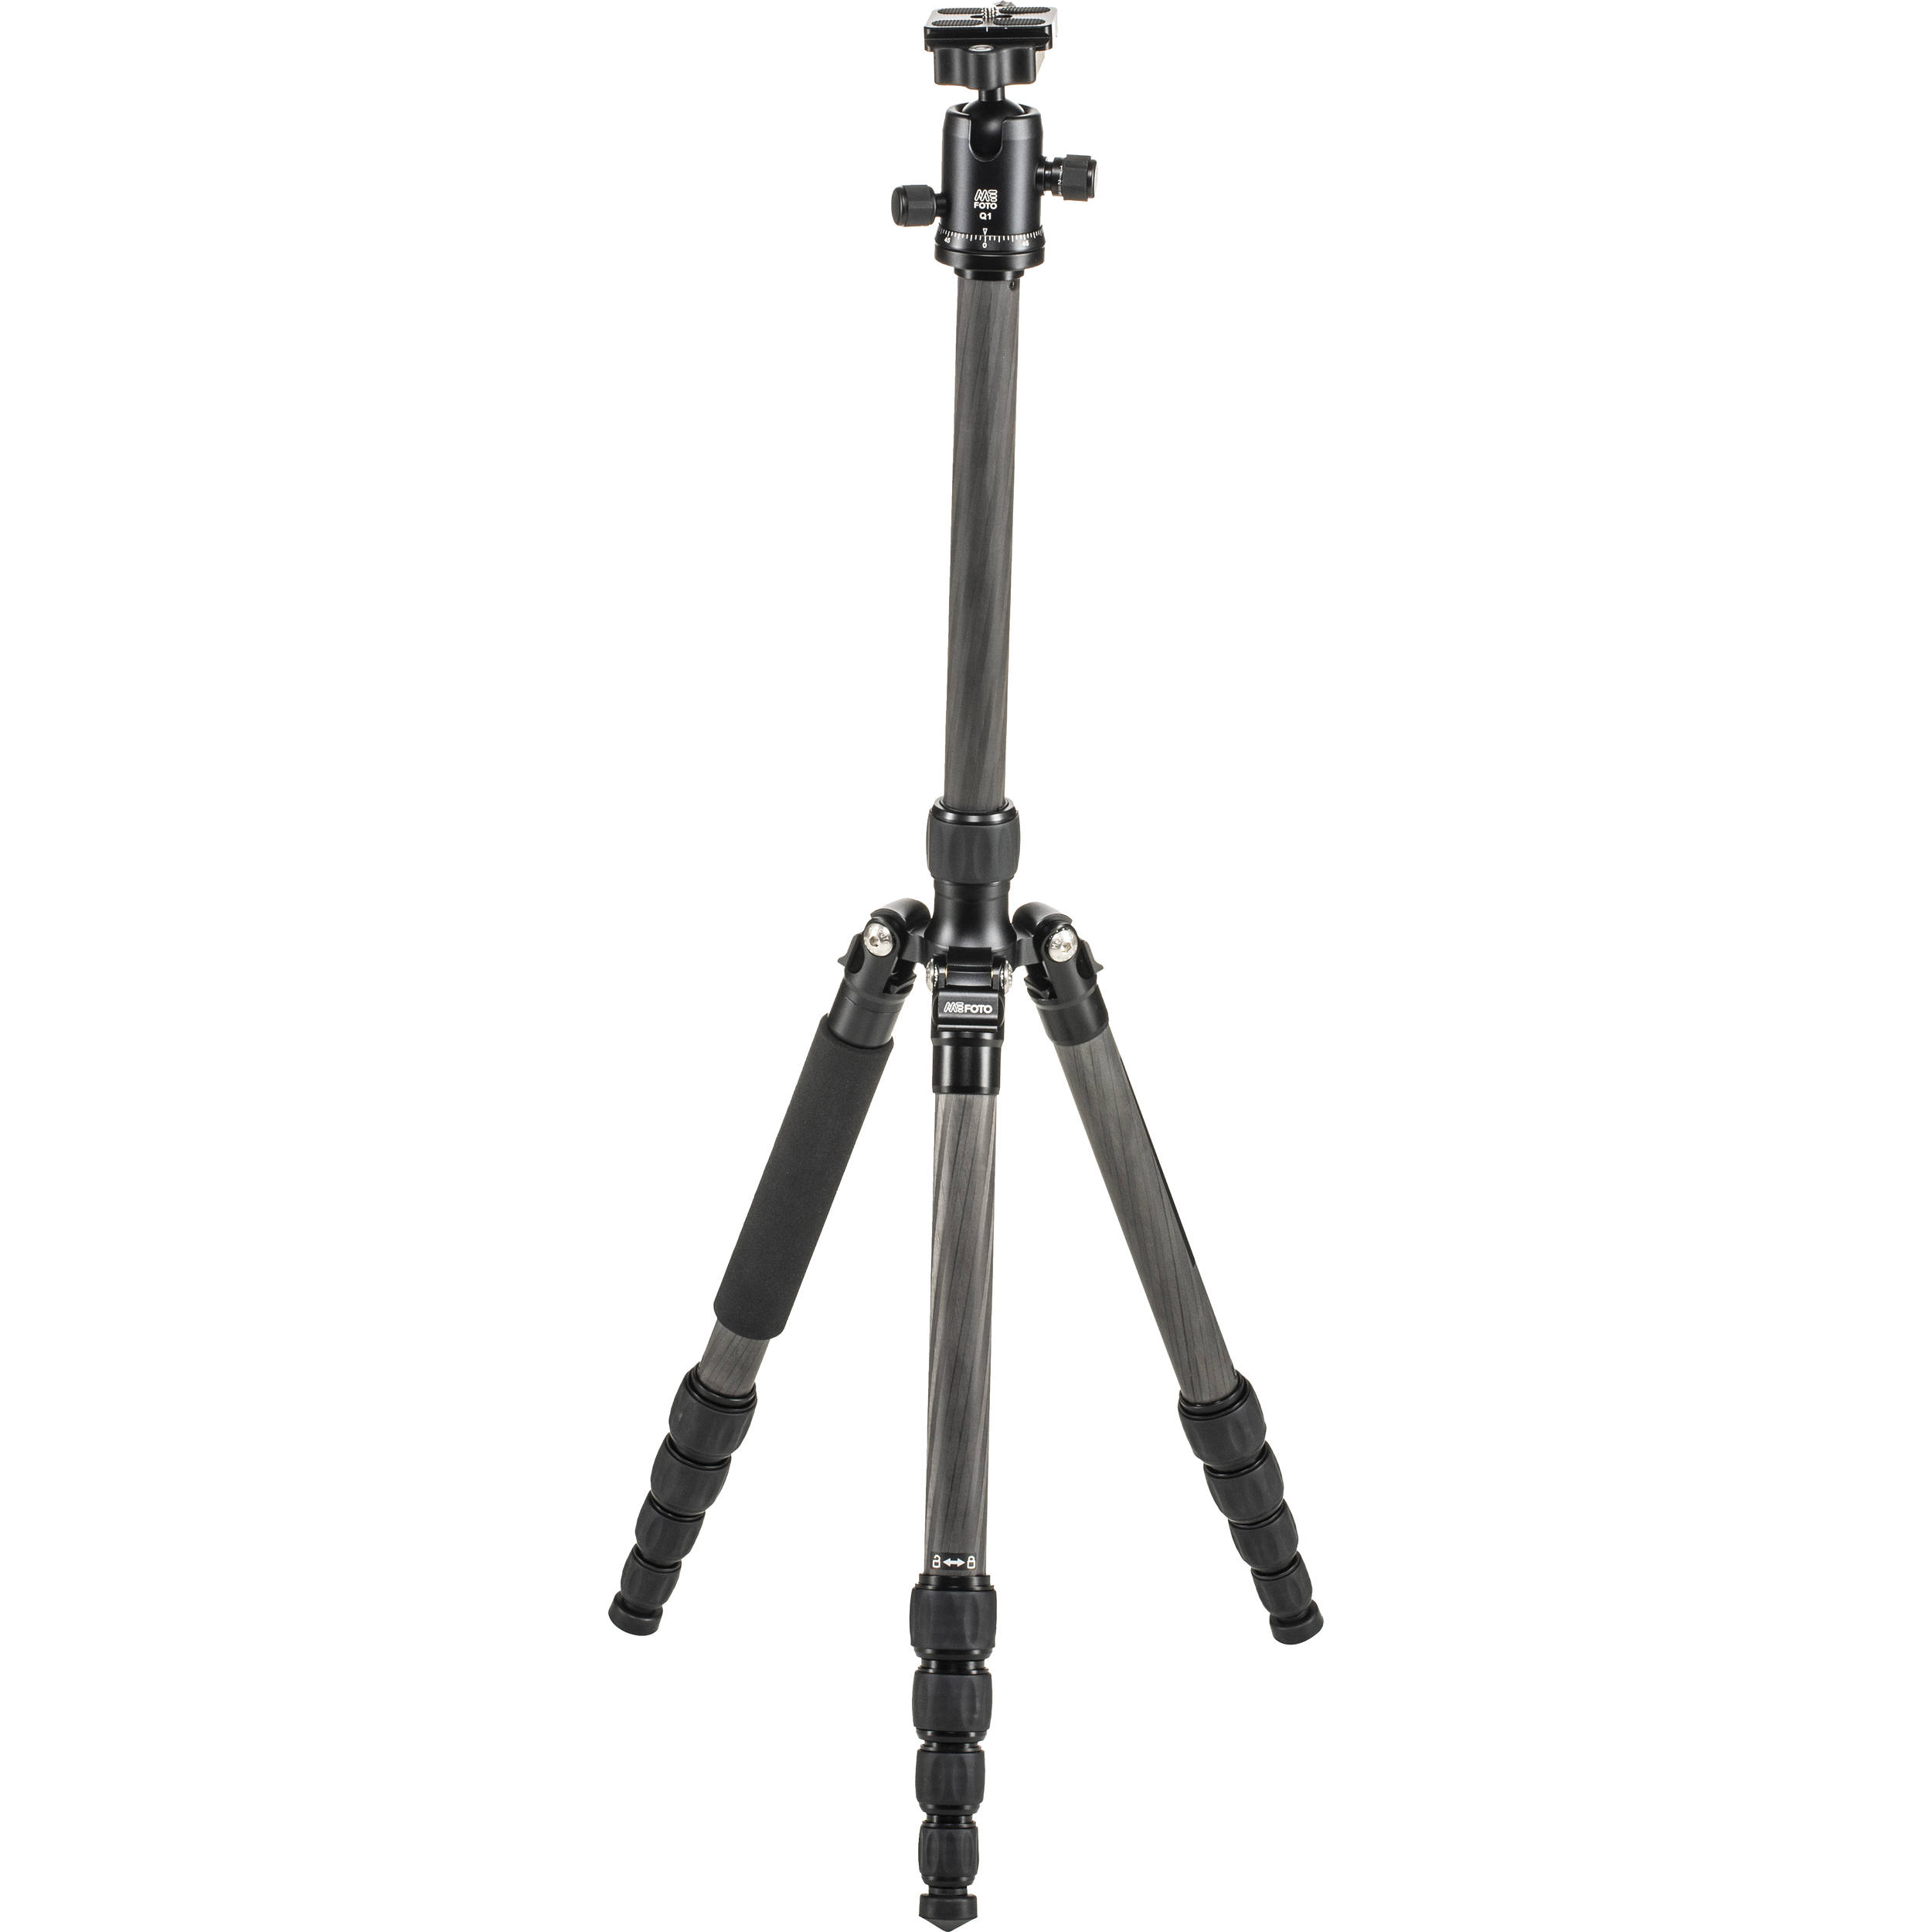 Carbon Fiber Travel Tripod Professional Lightweight Travel Portable Folding Design 360/° Panorama Ball Head with Quick Release Plate Black for Travel and Work